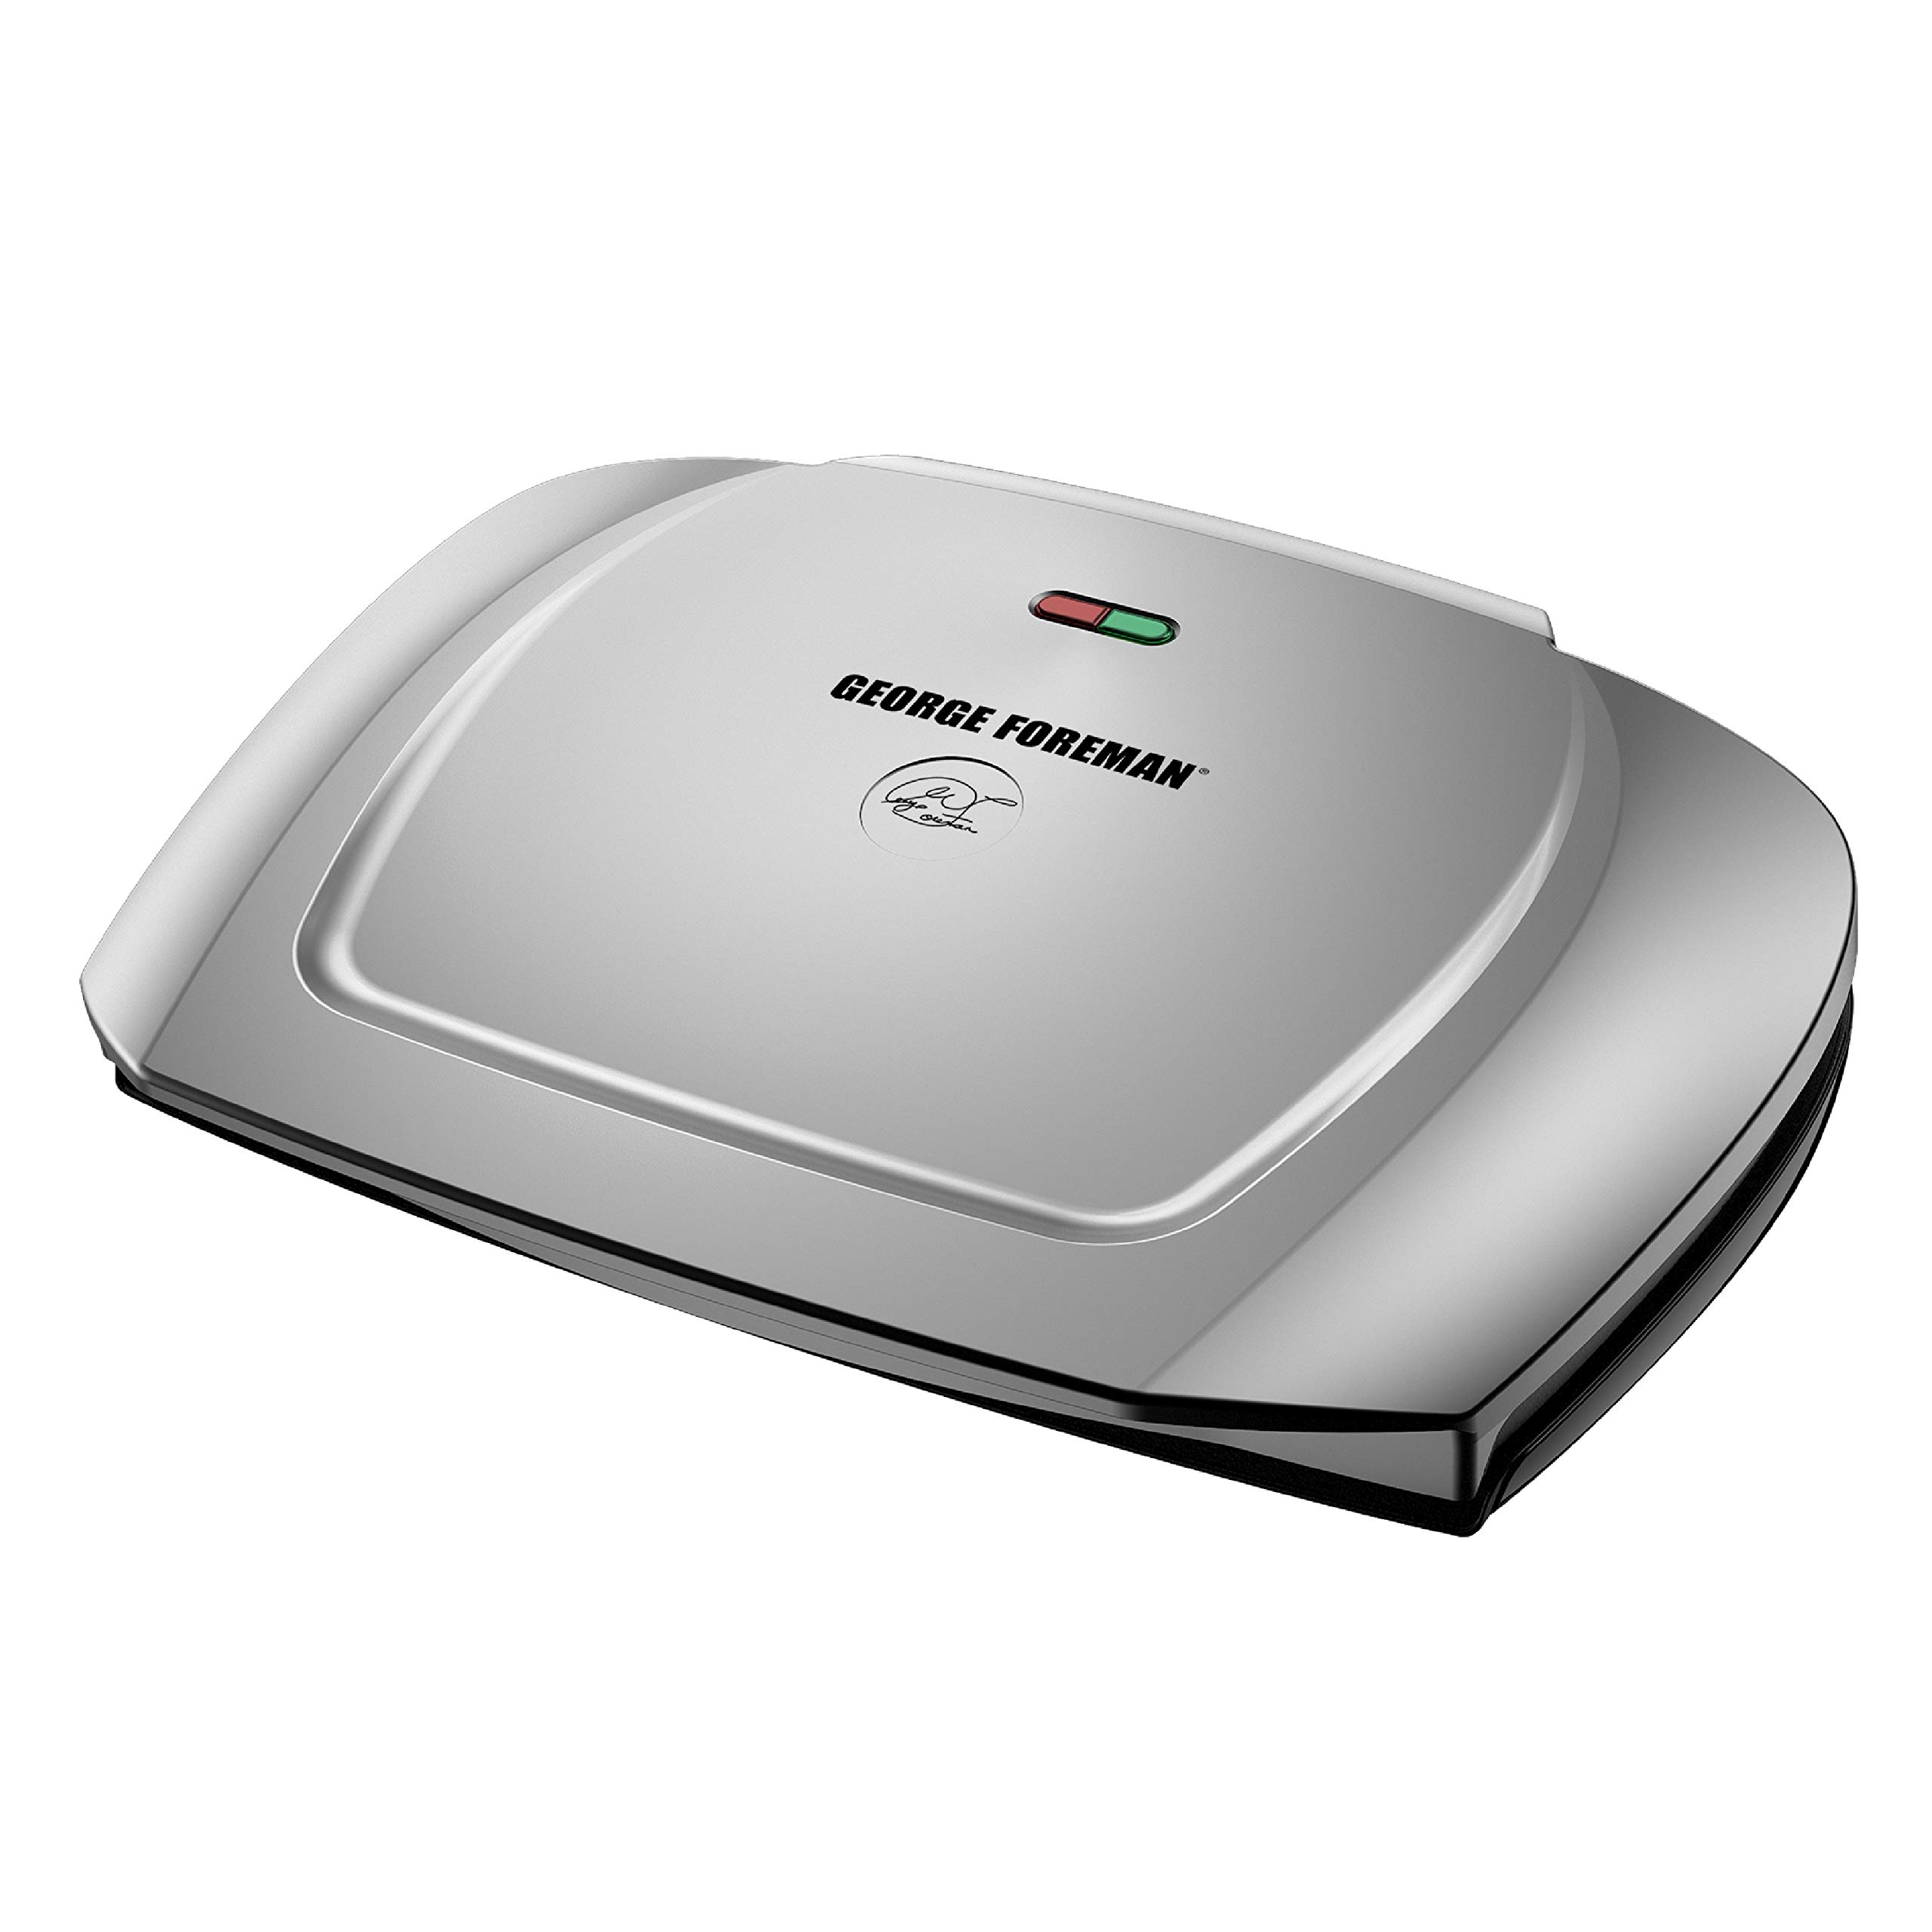 George Foreman 9-Serving Basic Plate Electric Grill and Panini Press, 144-Square-Inch, Platinum, GR2144P by George Foreman